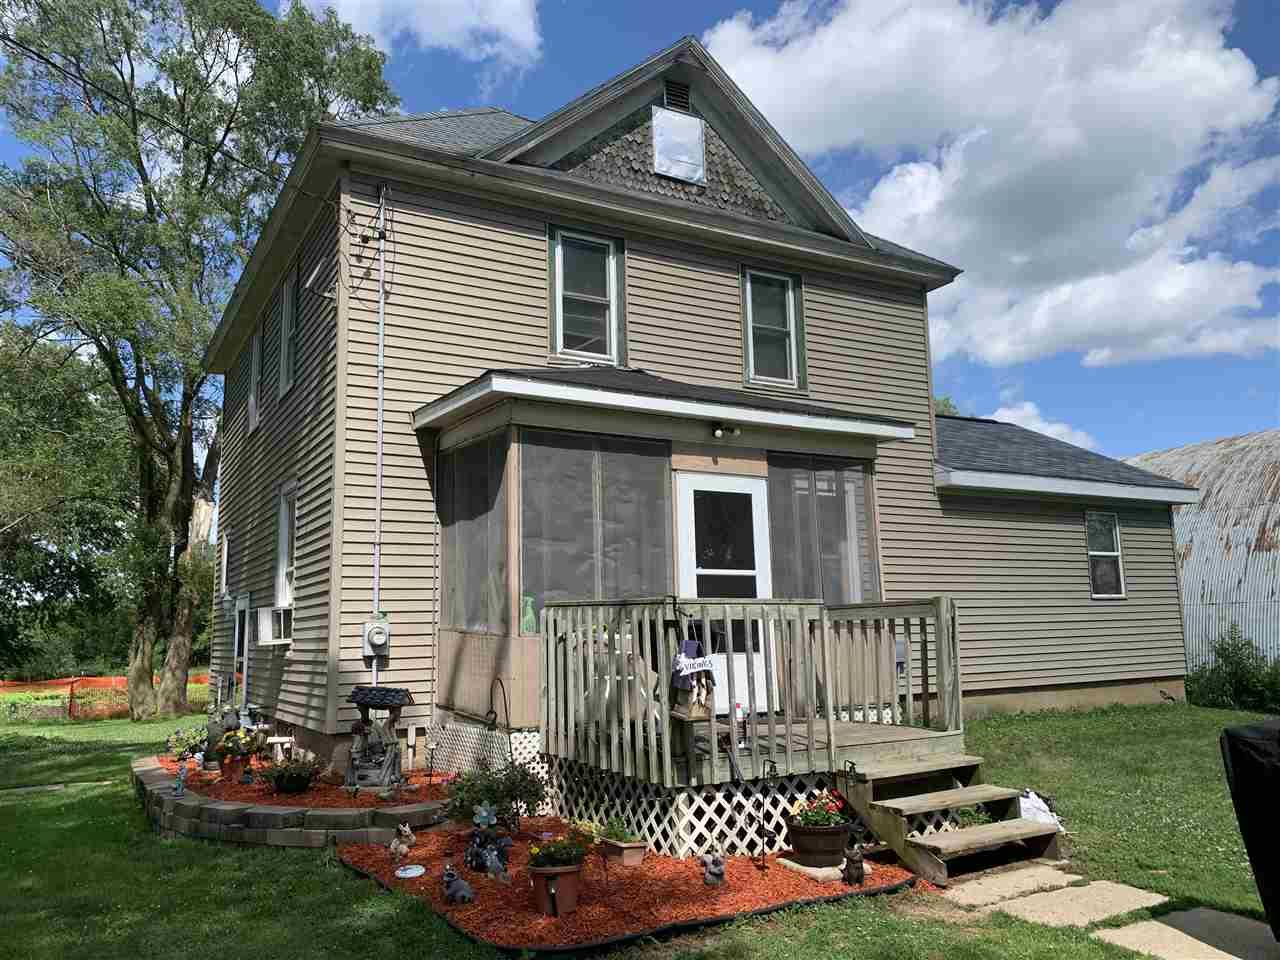 441 S Main St, Fall River, WI 53932 - #: 1886950